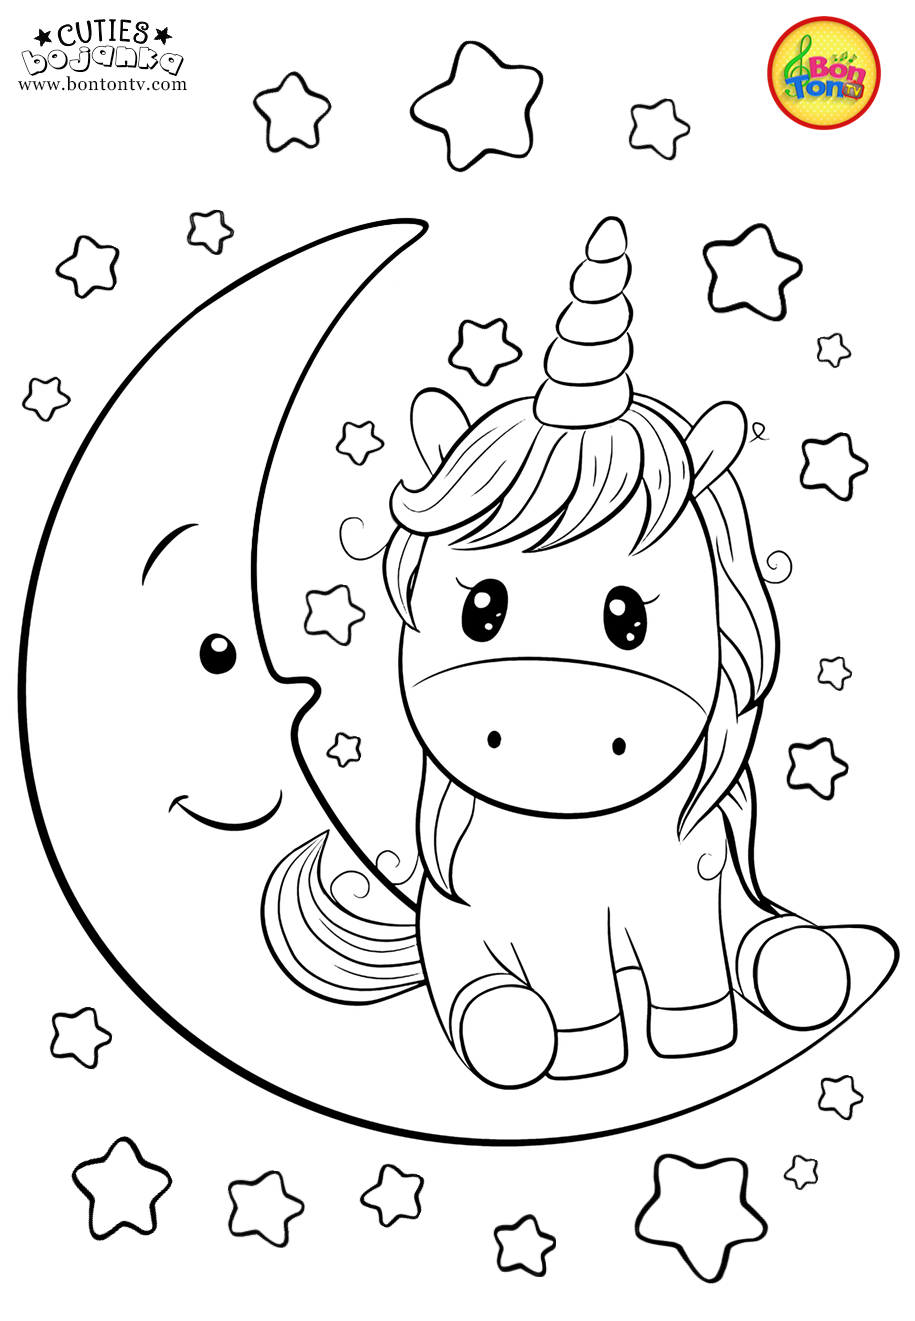 Fantastic Photo Coloring Books For Preschool Tips This Is The Quintessential Self Help Guid In 2021 Free Kids Coloring Pages Unicorn Coloring Pages Cute Coloring Pages